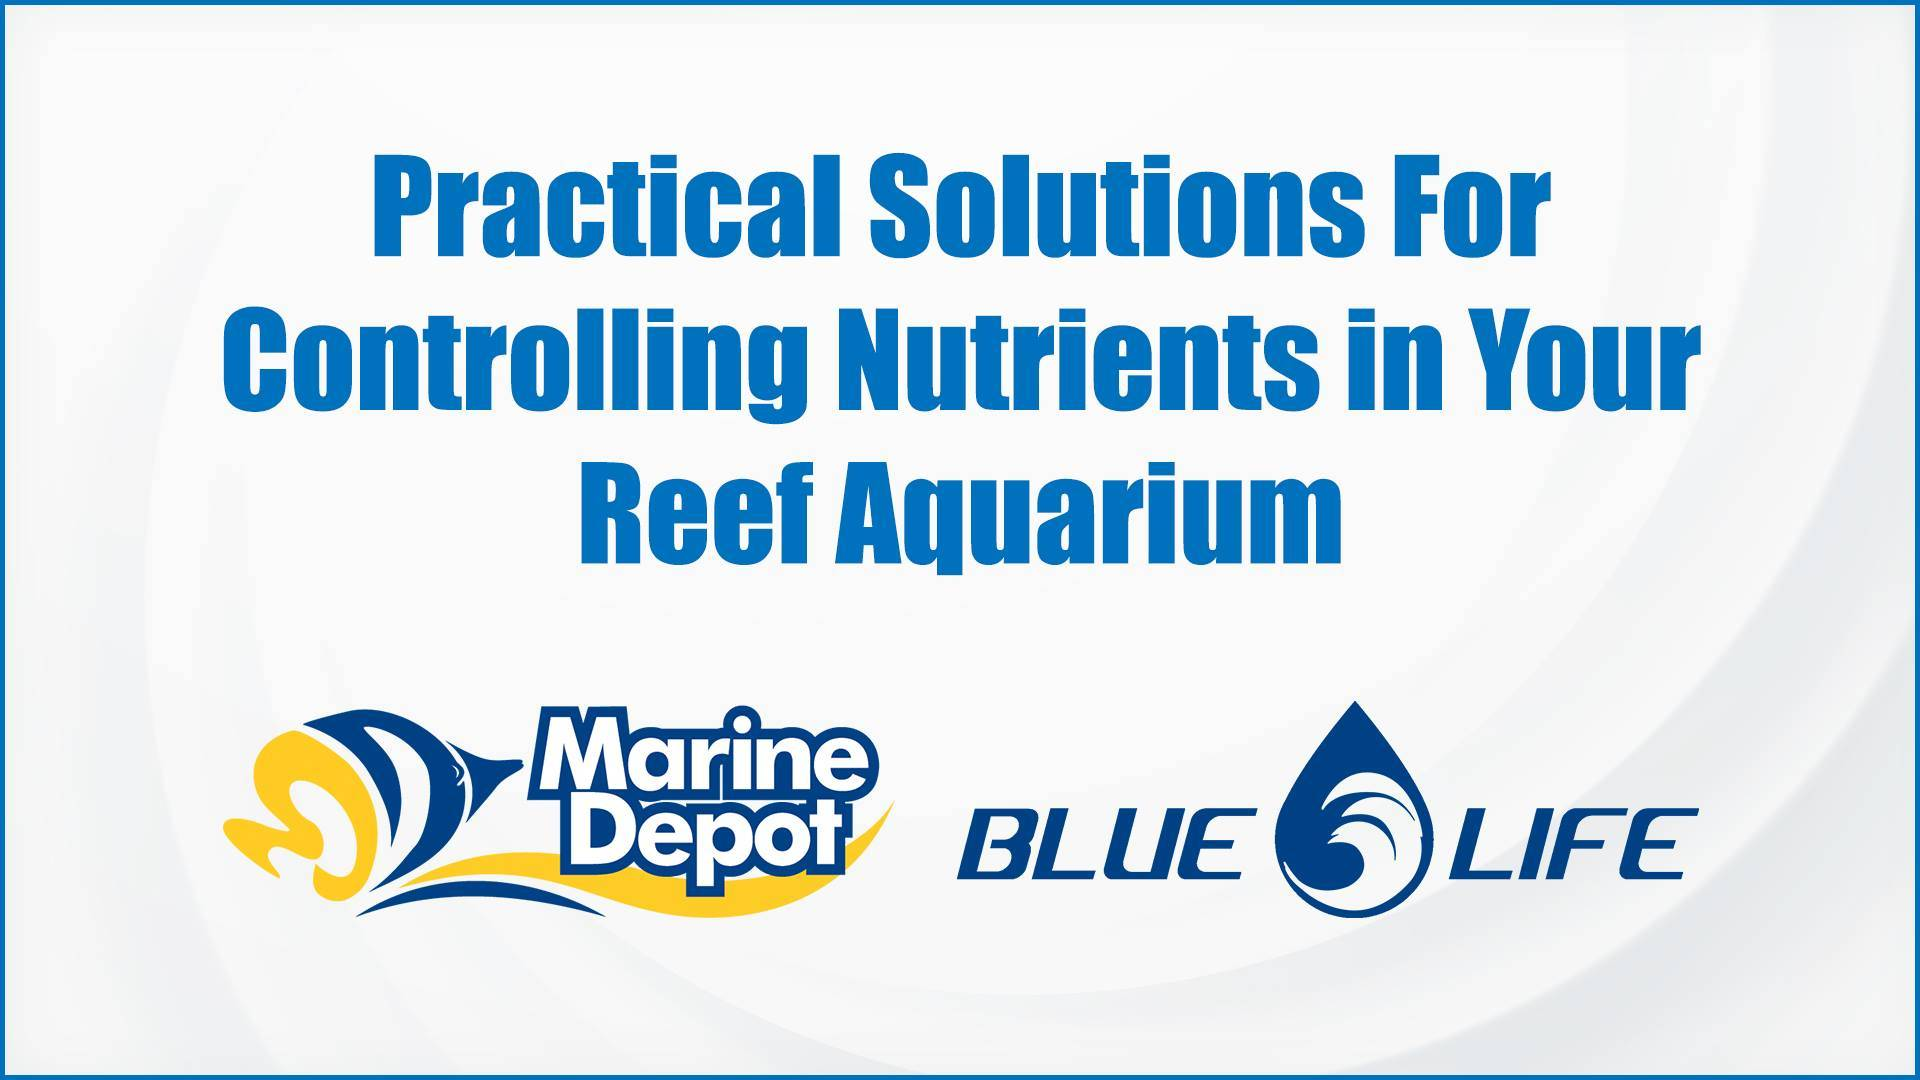 Practical Solutions For Controlling Nutrients in Your Reef Aquarium - Marine Depot Chats with Experts #2